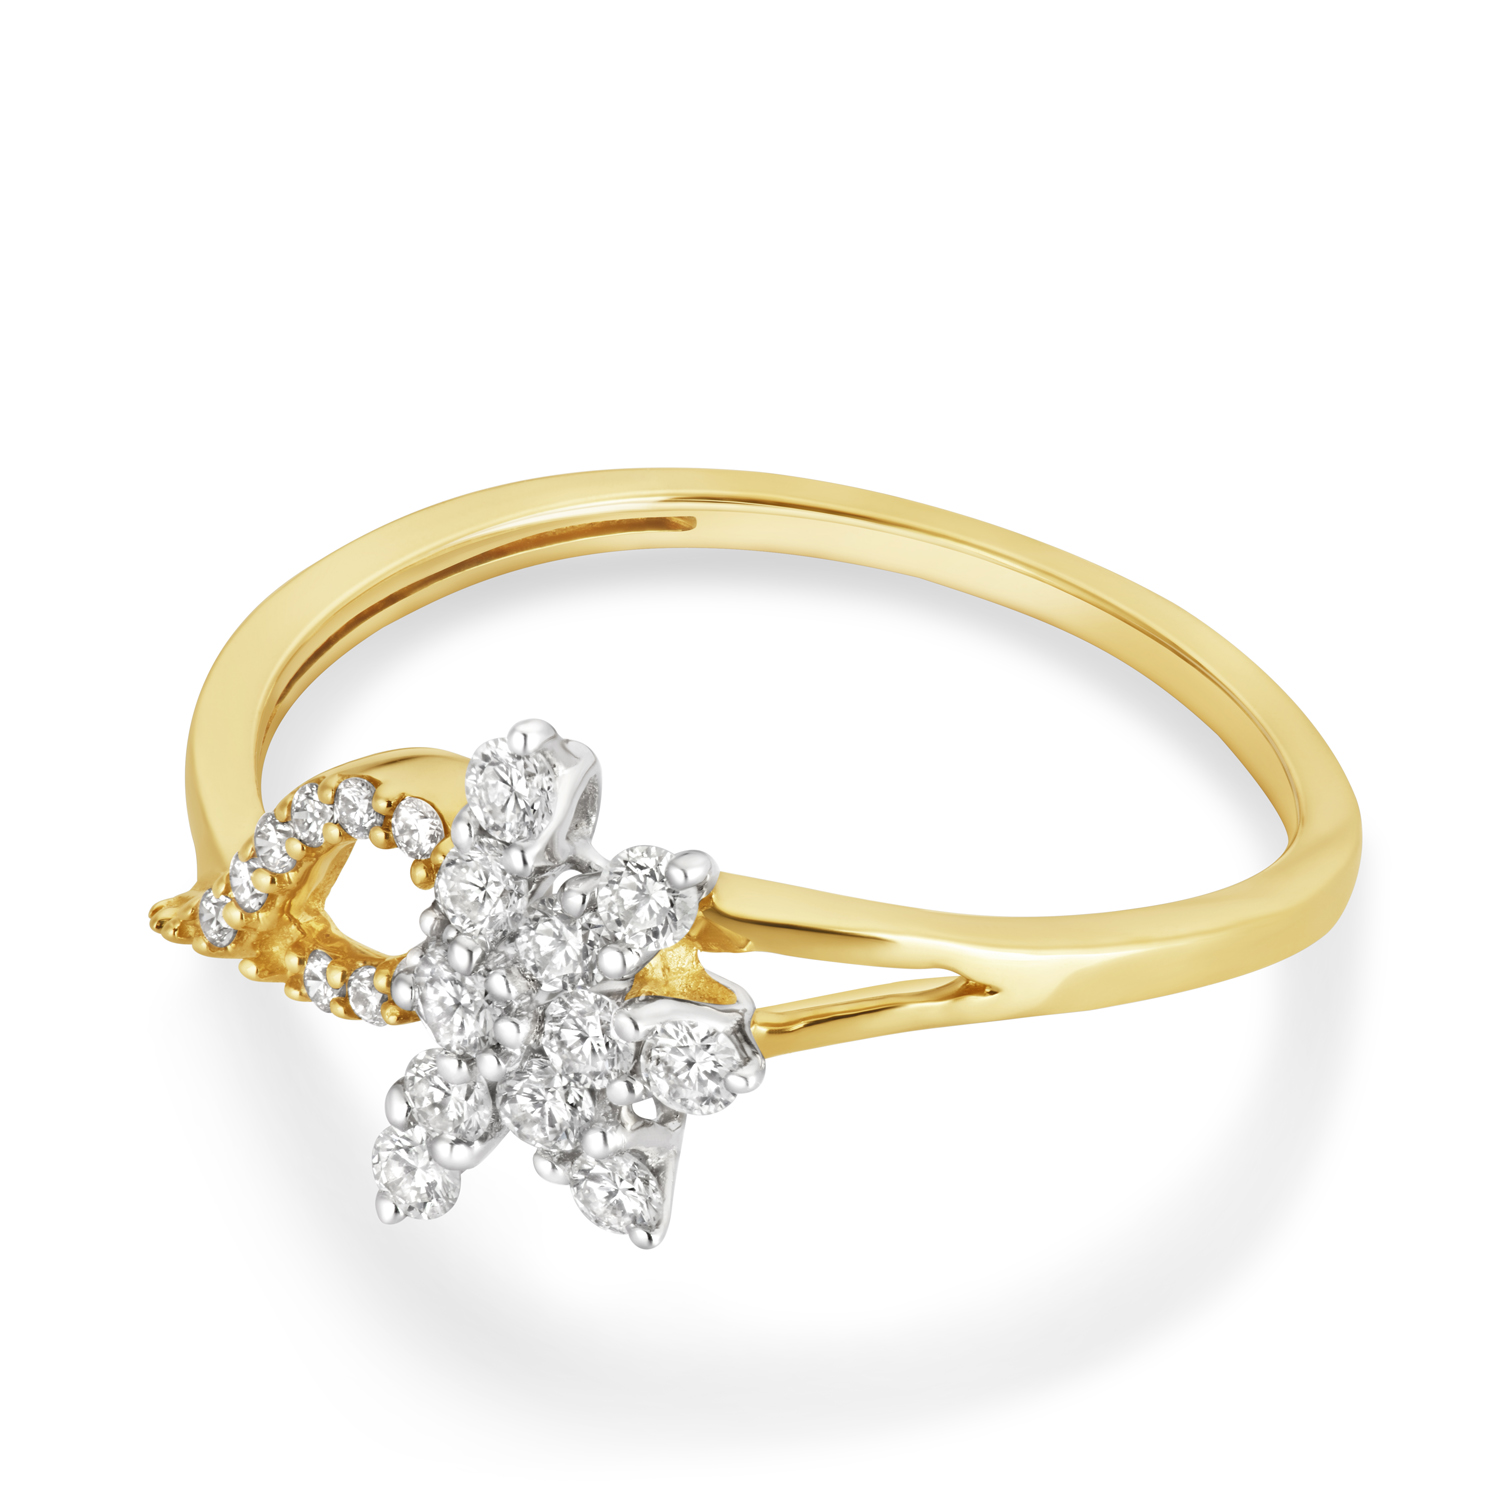 VFM 14K Yellow Gold Diamonds Ring - VFM466